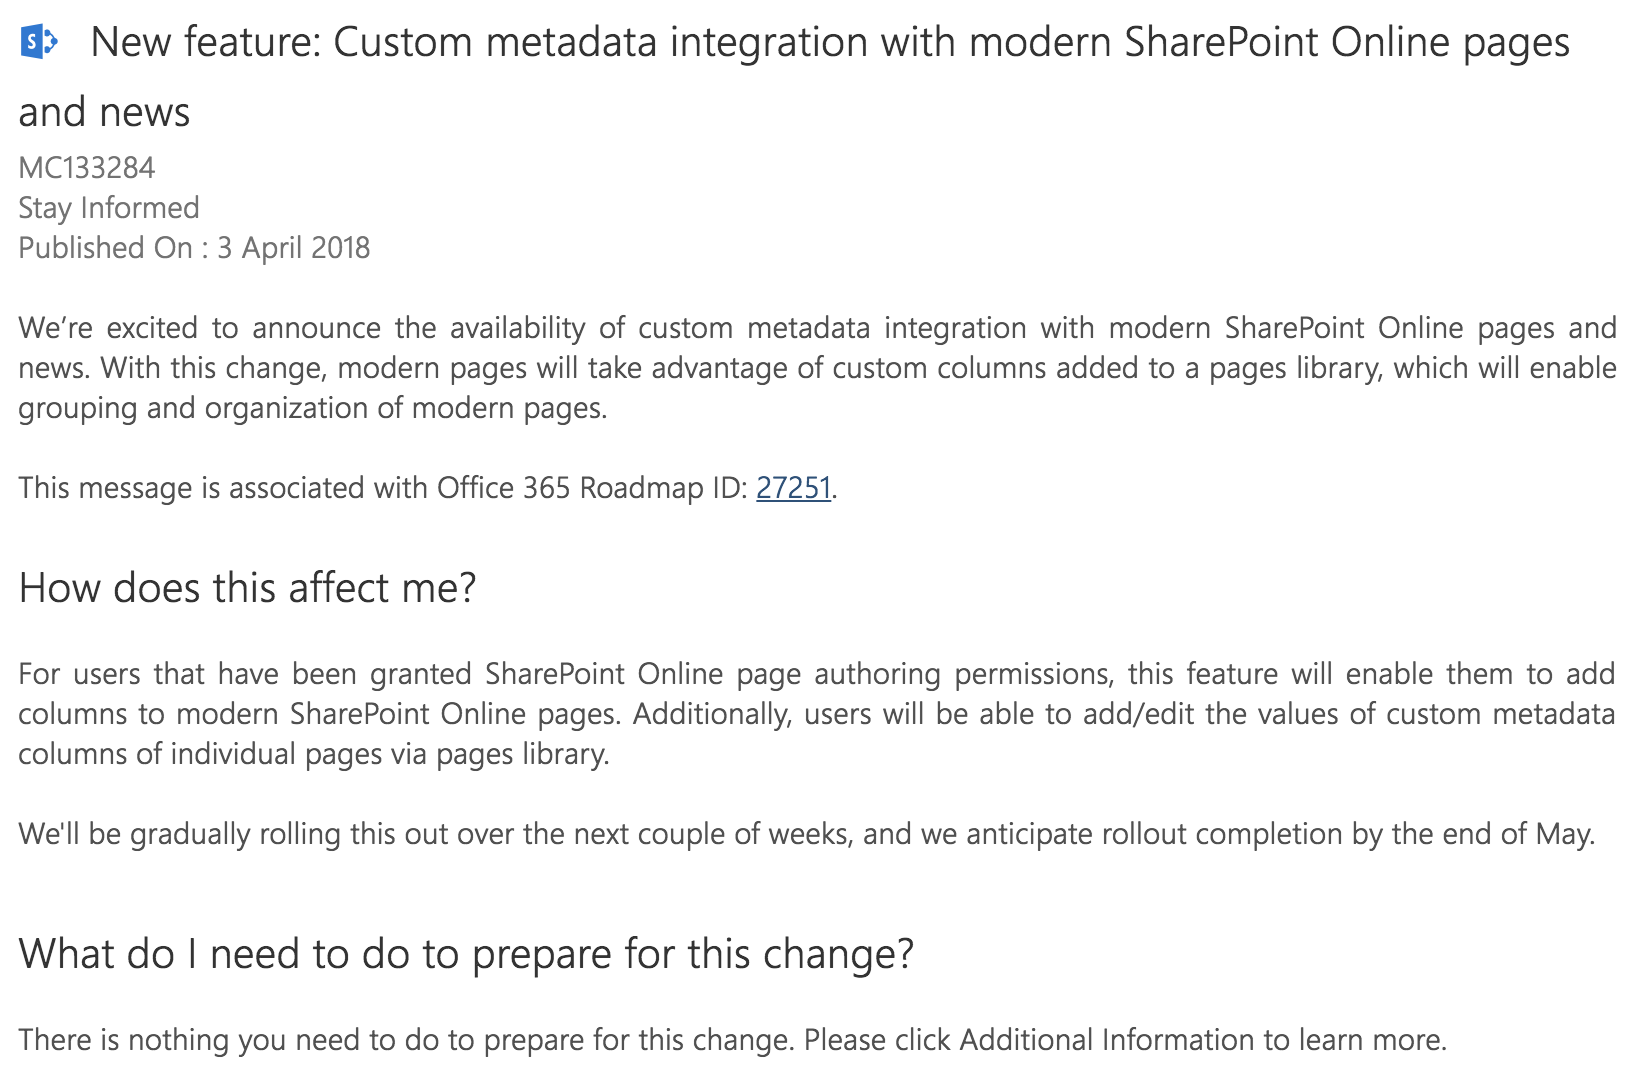 Custom metadata integration with modern SharePoint Online pages and news